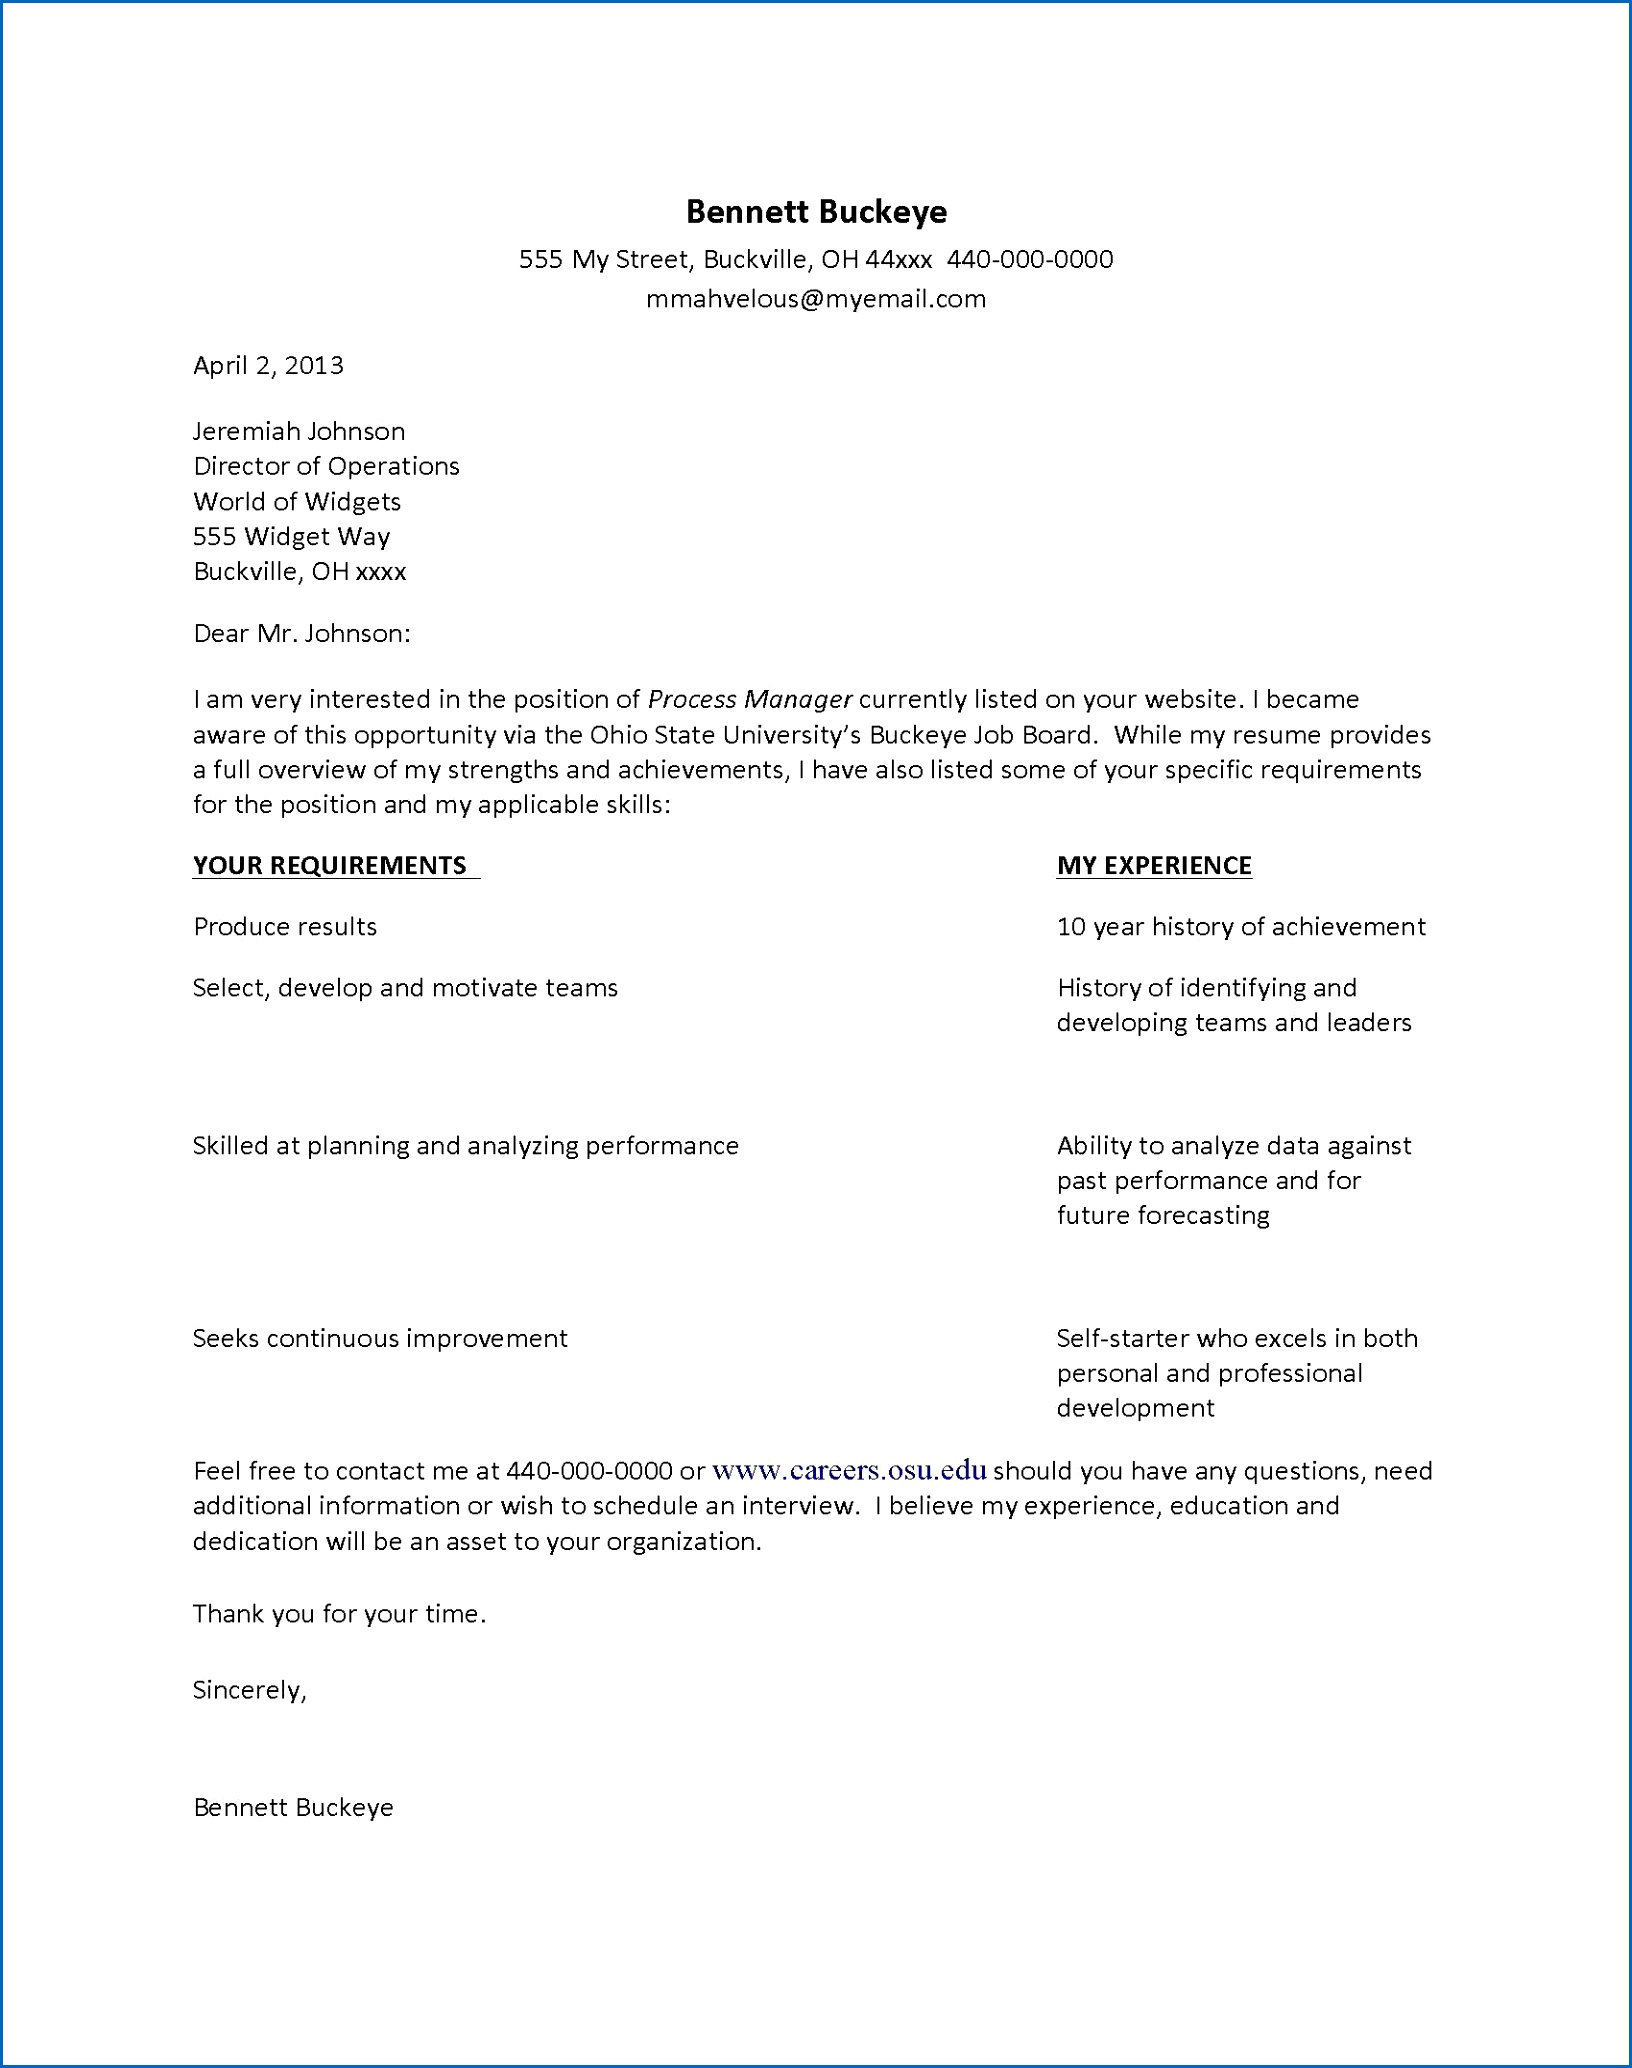 Audit Confirmation Letter Template Collection | Letter Cover Templates